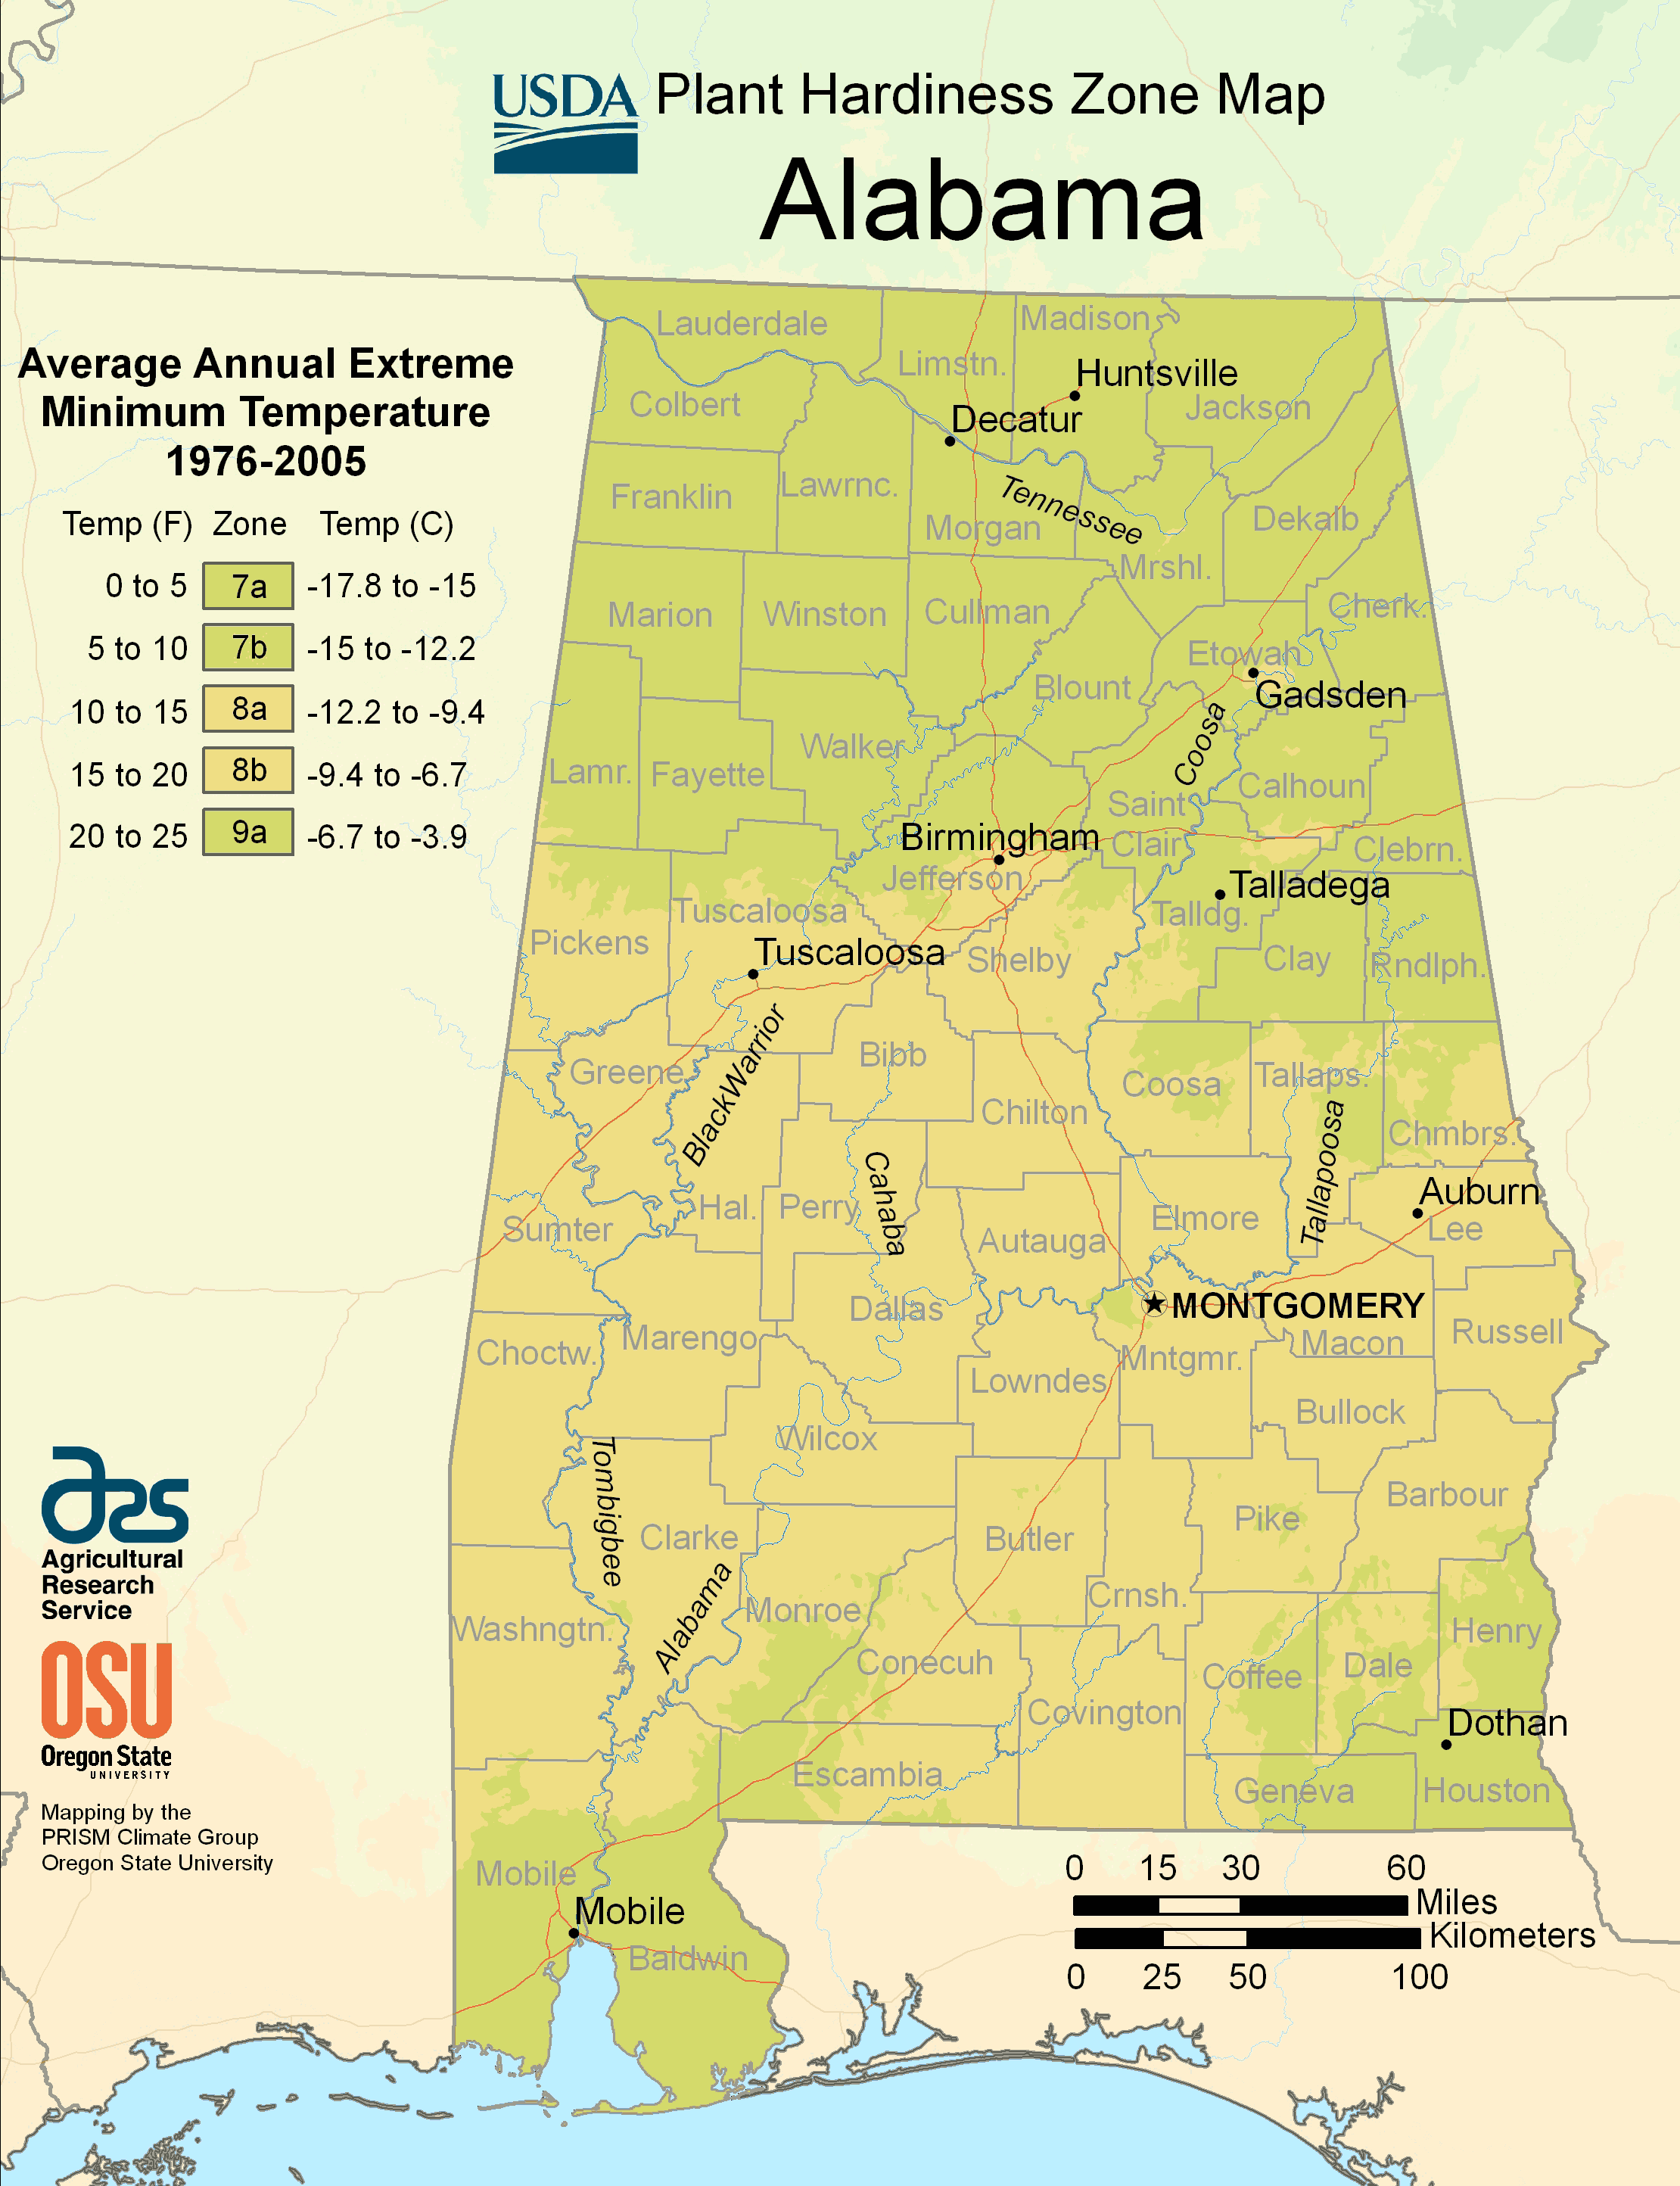 Alabama Plant Hardiness Zone Map